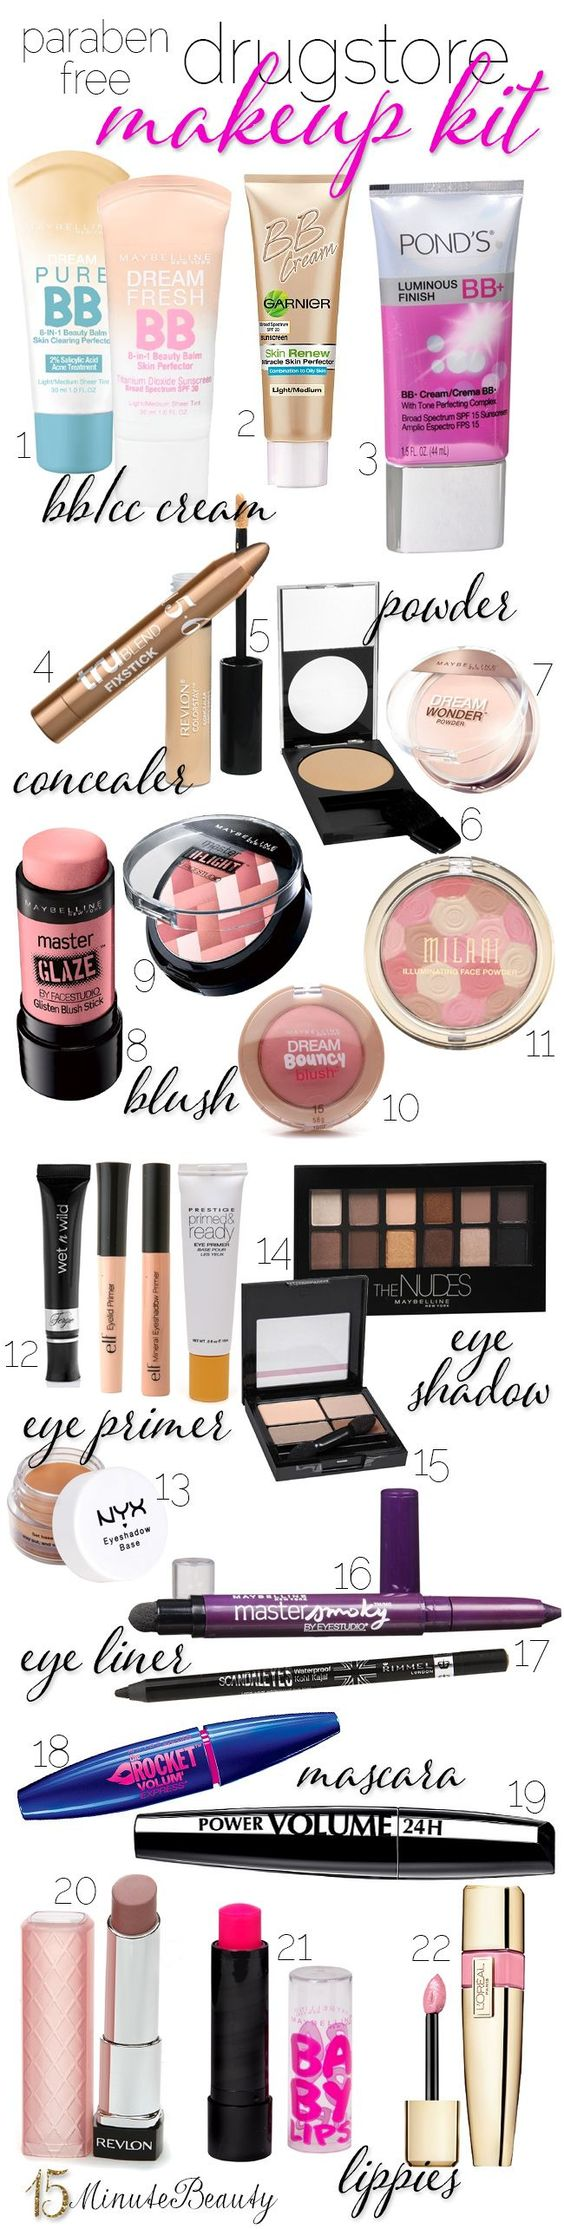 Paraben Free Drugstore Makeup Kit: Yes, It Is Possible!  via @15 Minute Beauty